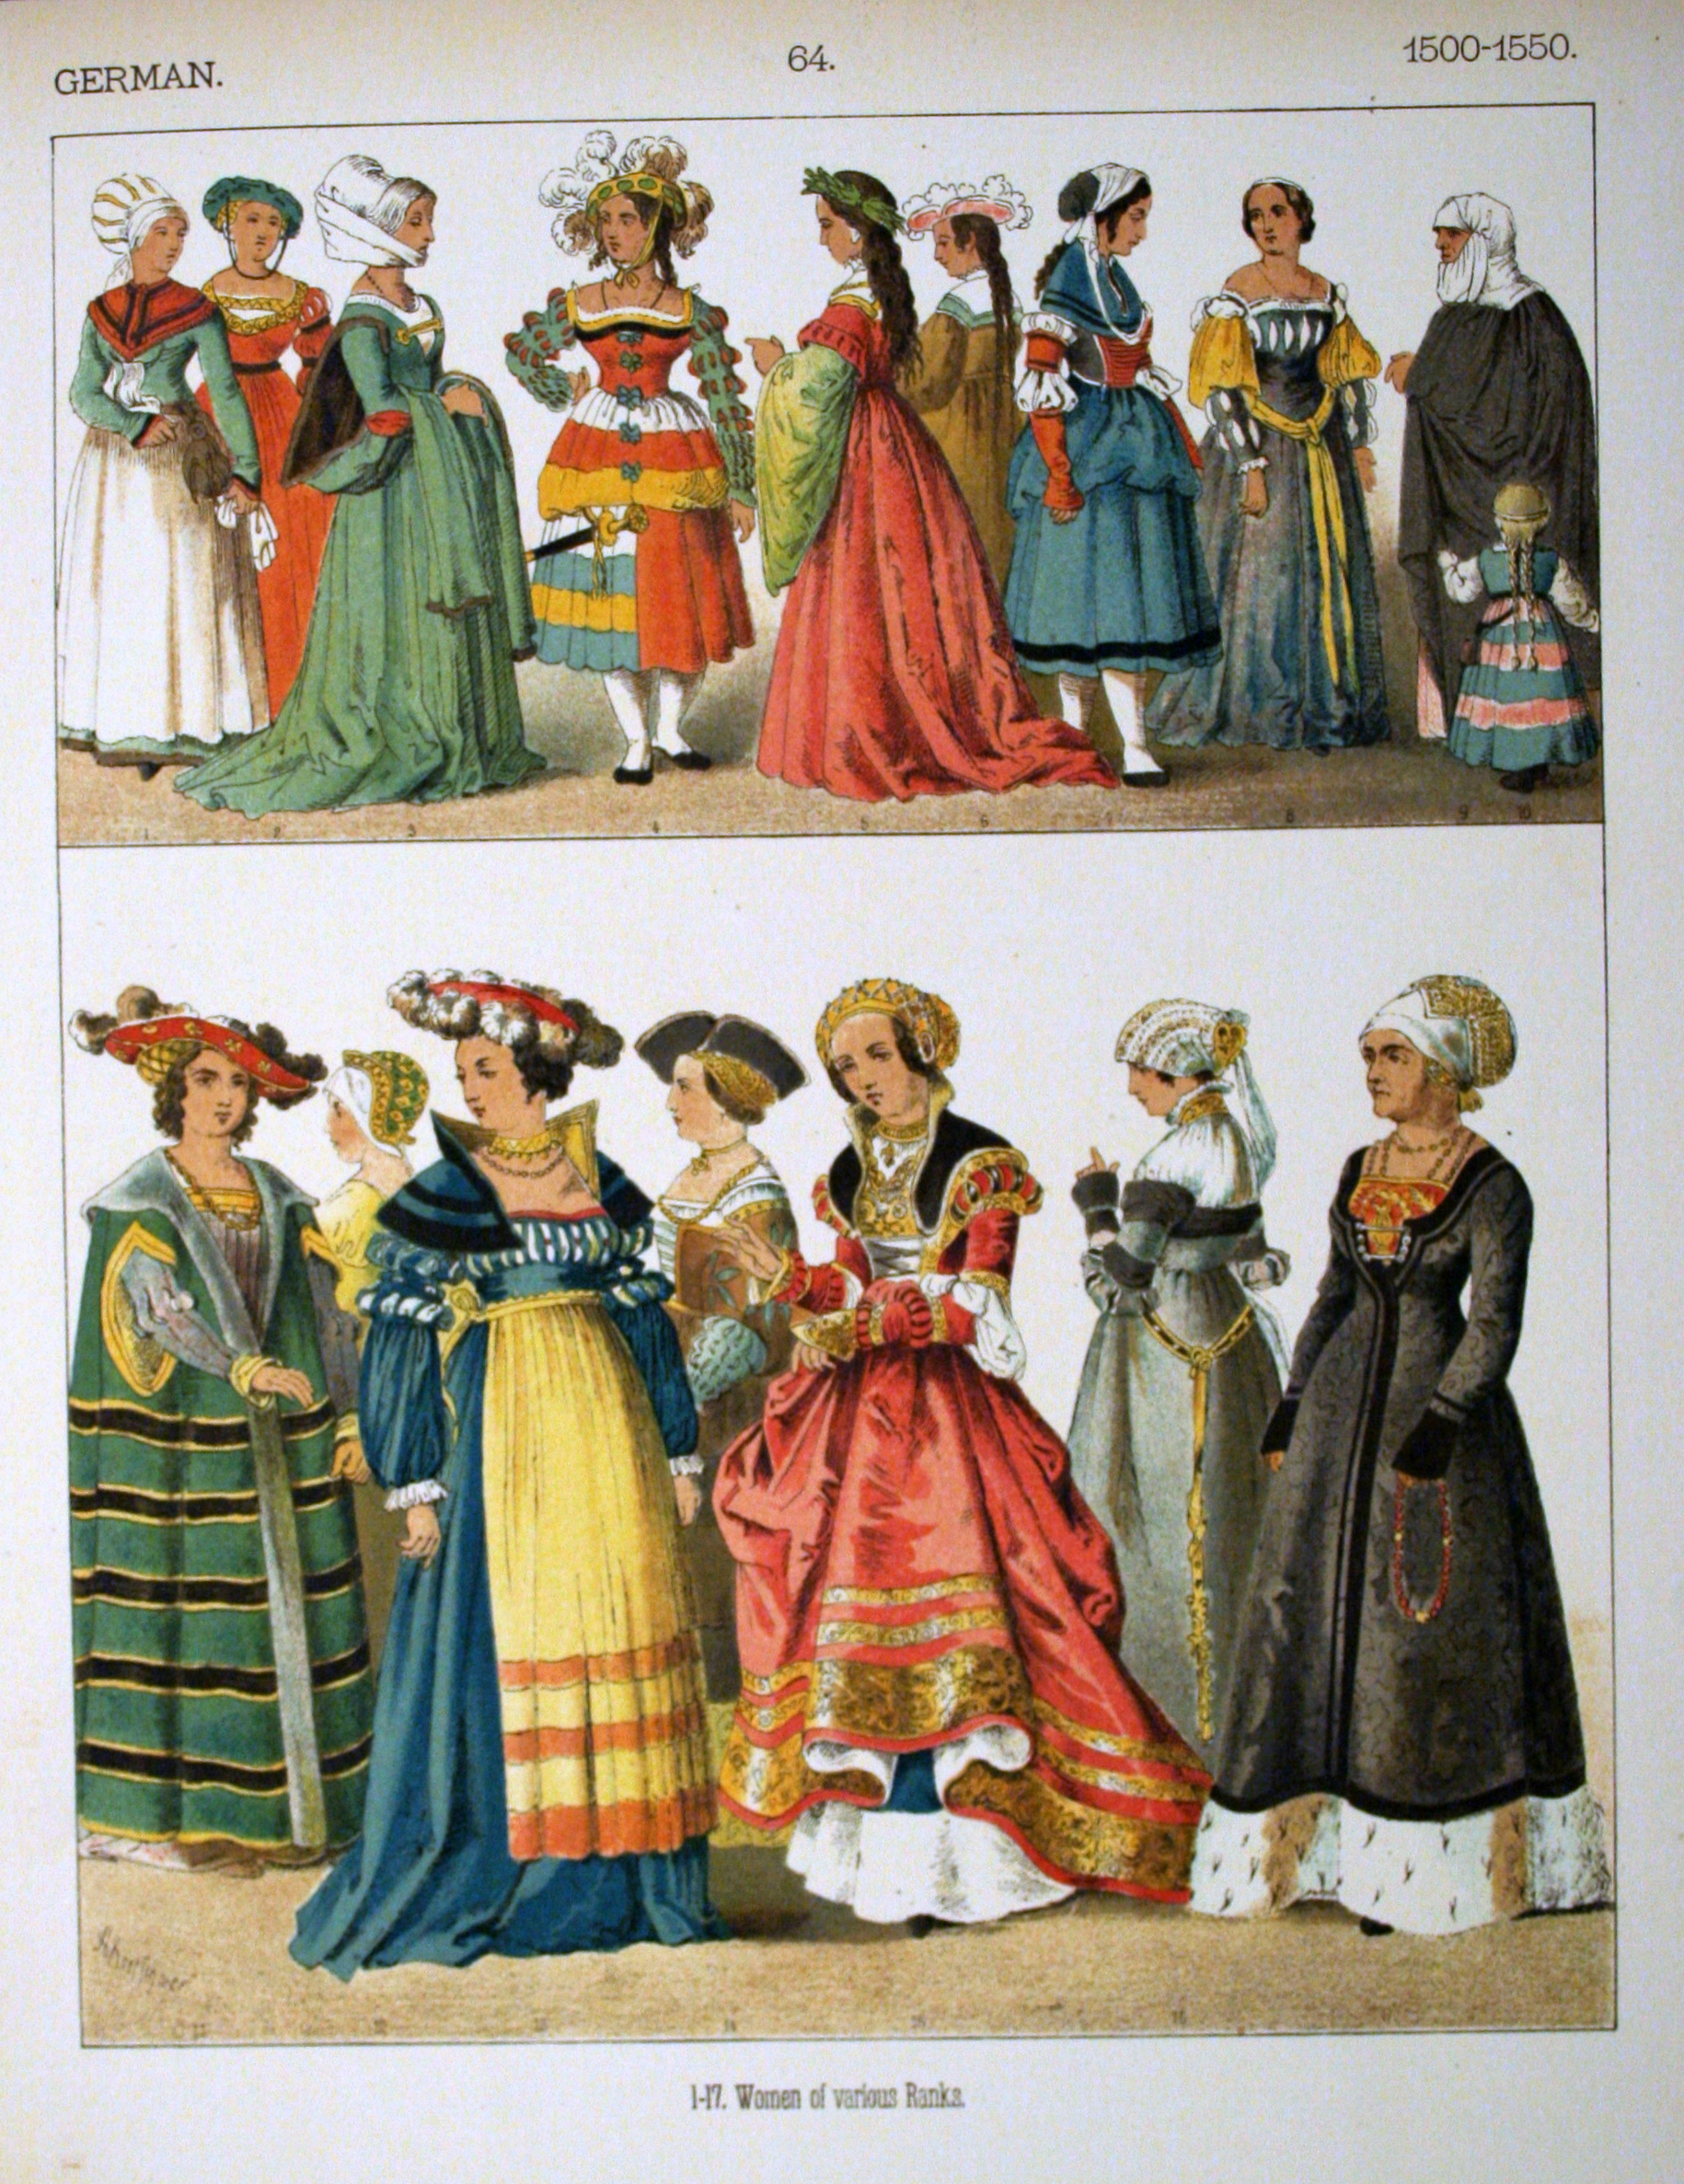 File:1500-1550, German. - 064 - Costumes of All Nations (